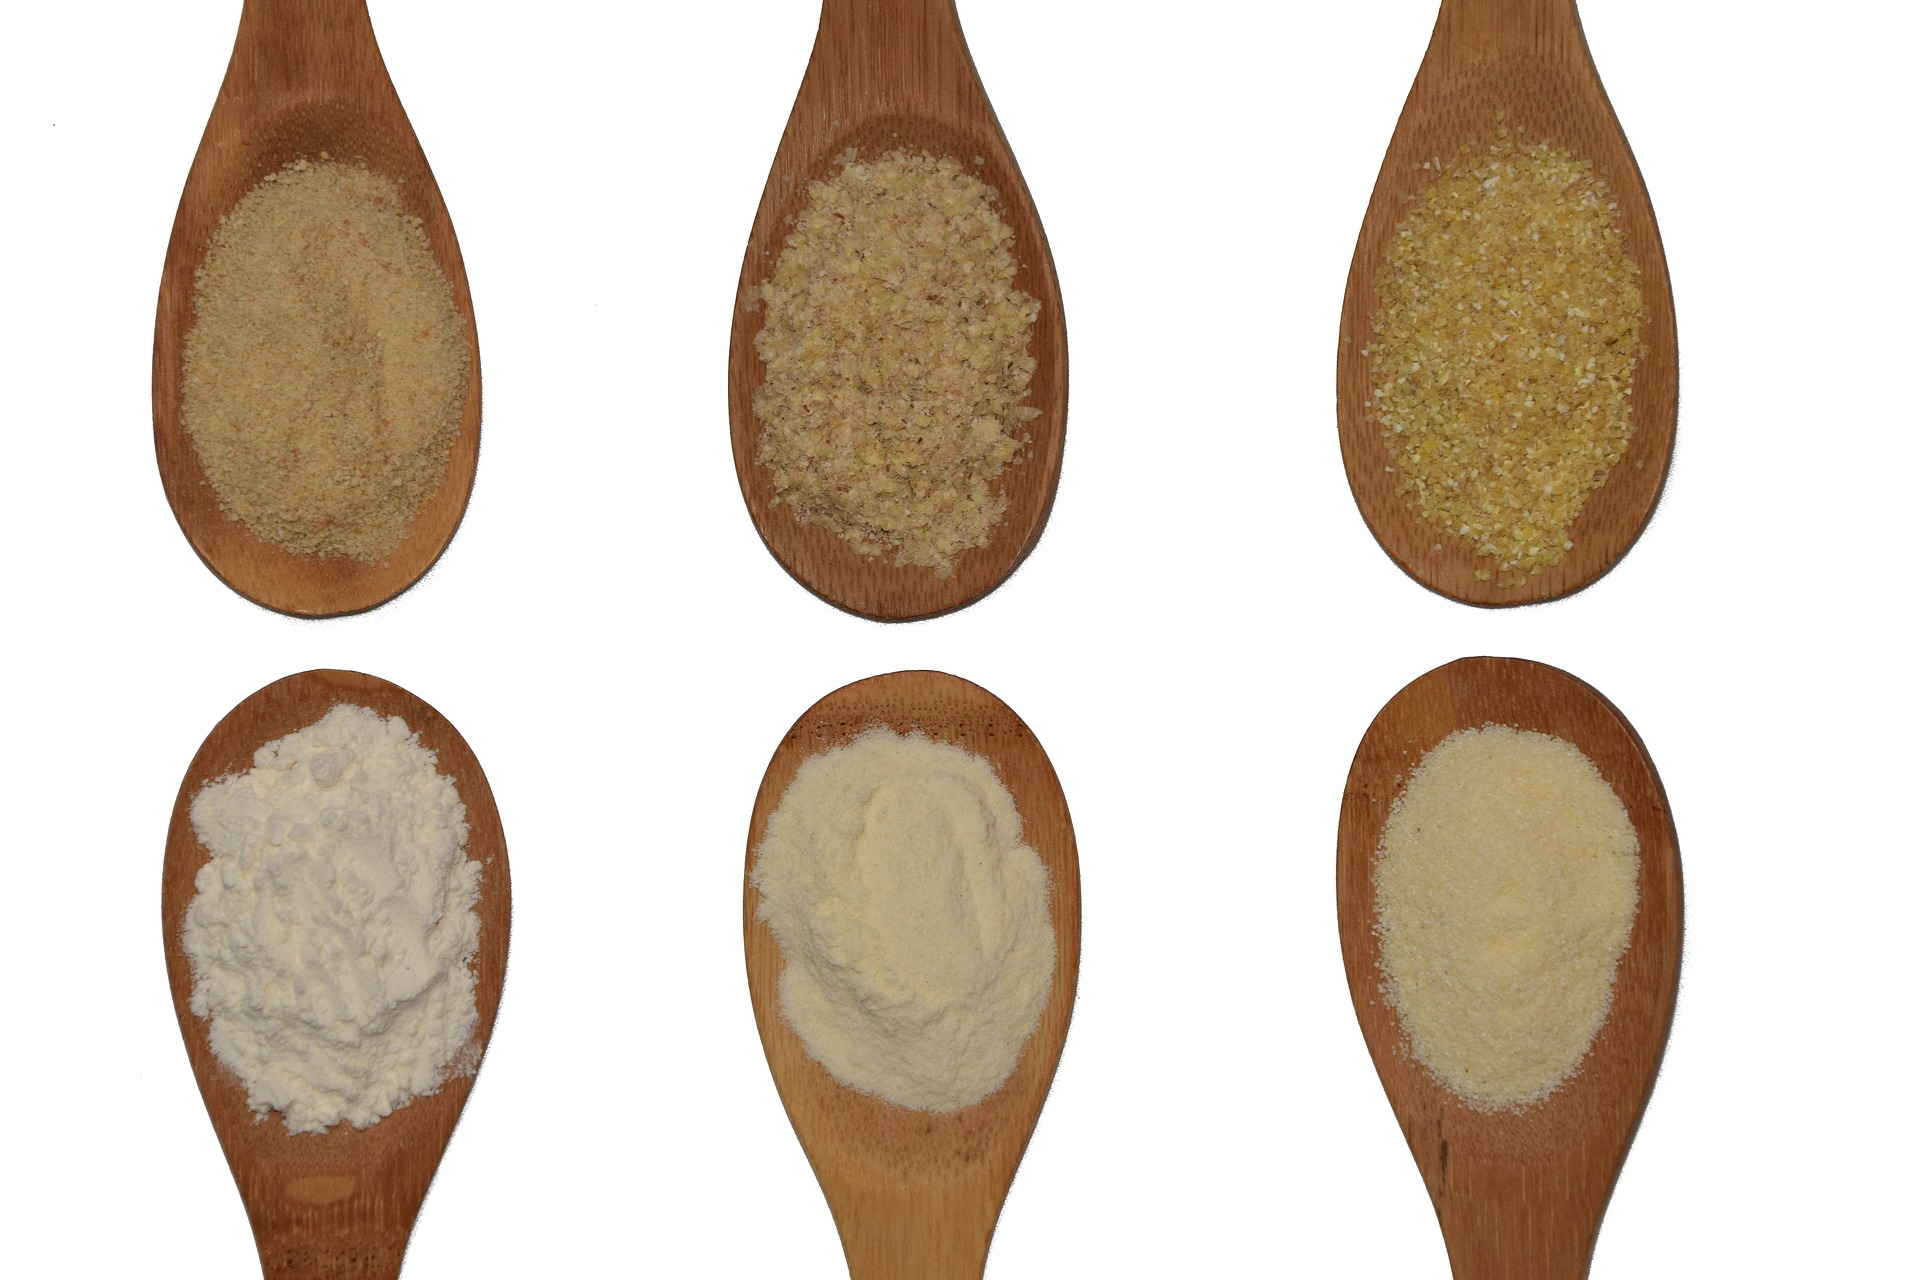 6 wooden spoons with different types of grains.